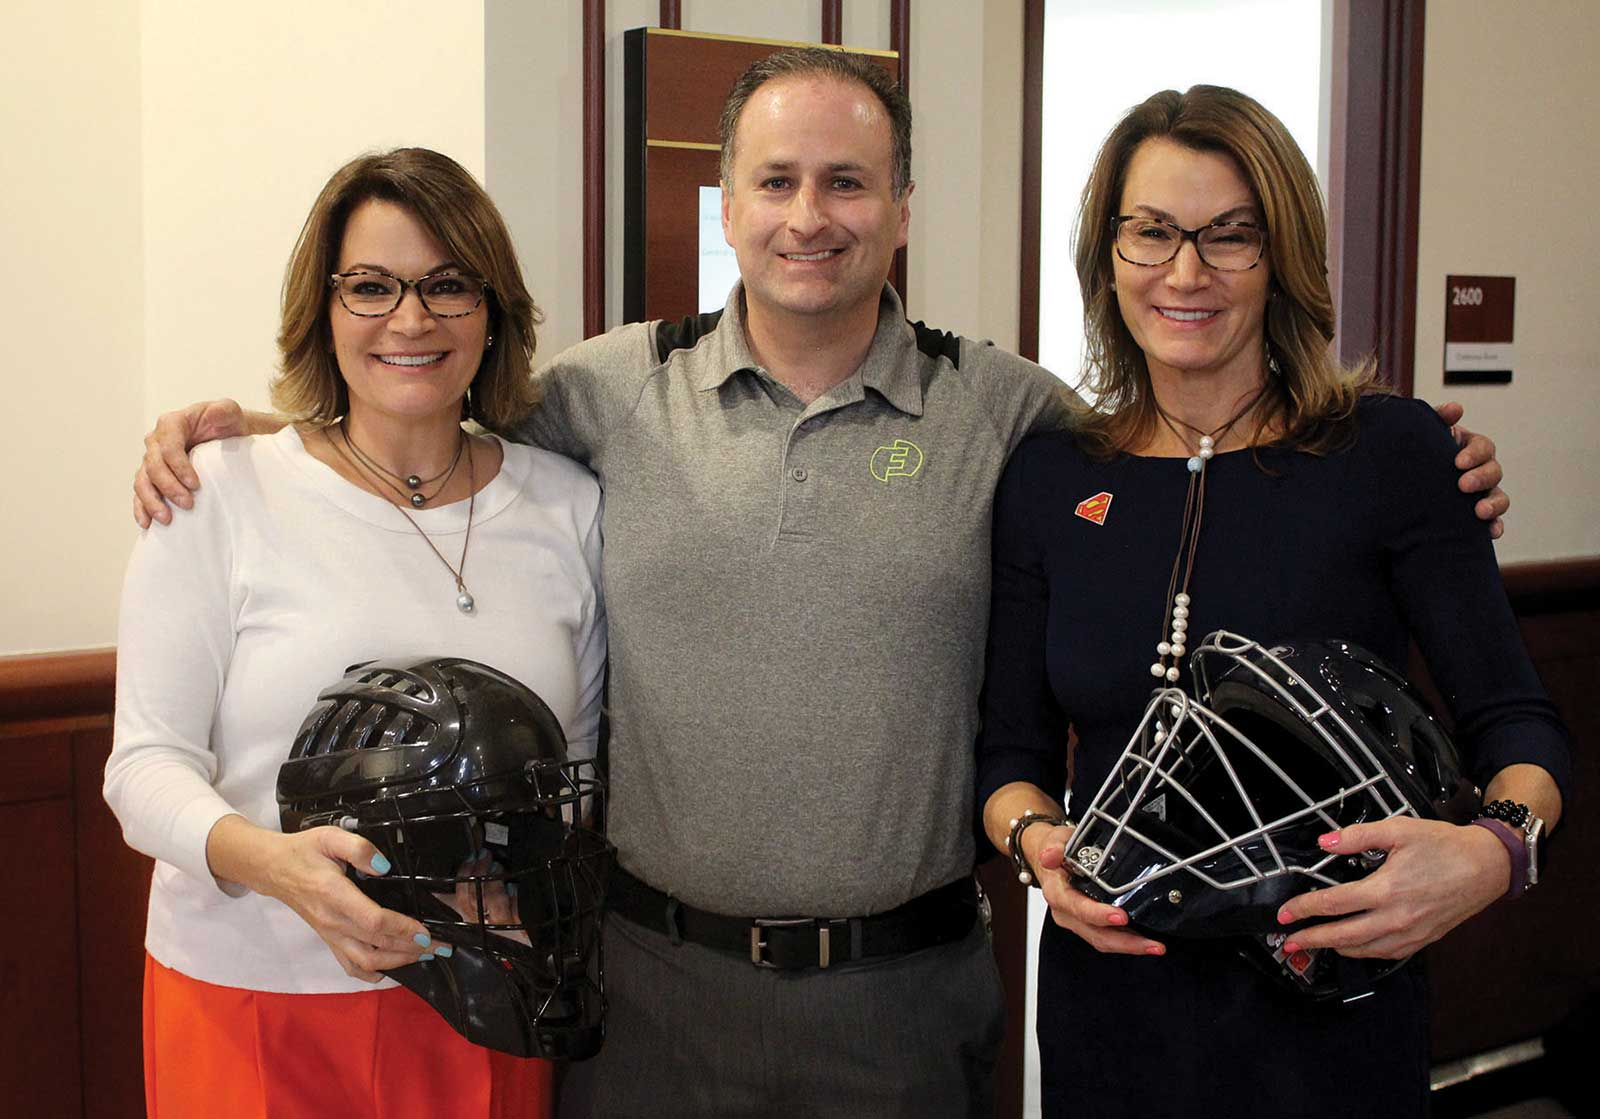 Klarides Sisters' Bill Proposal A Home Run for Athletes